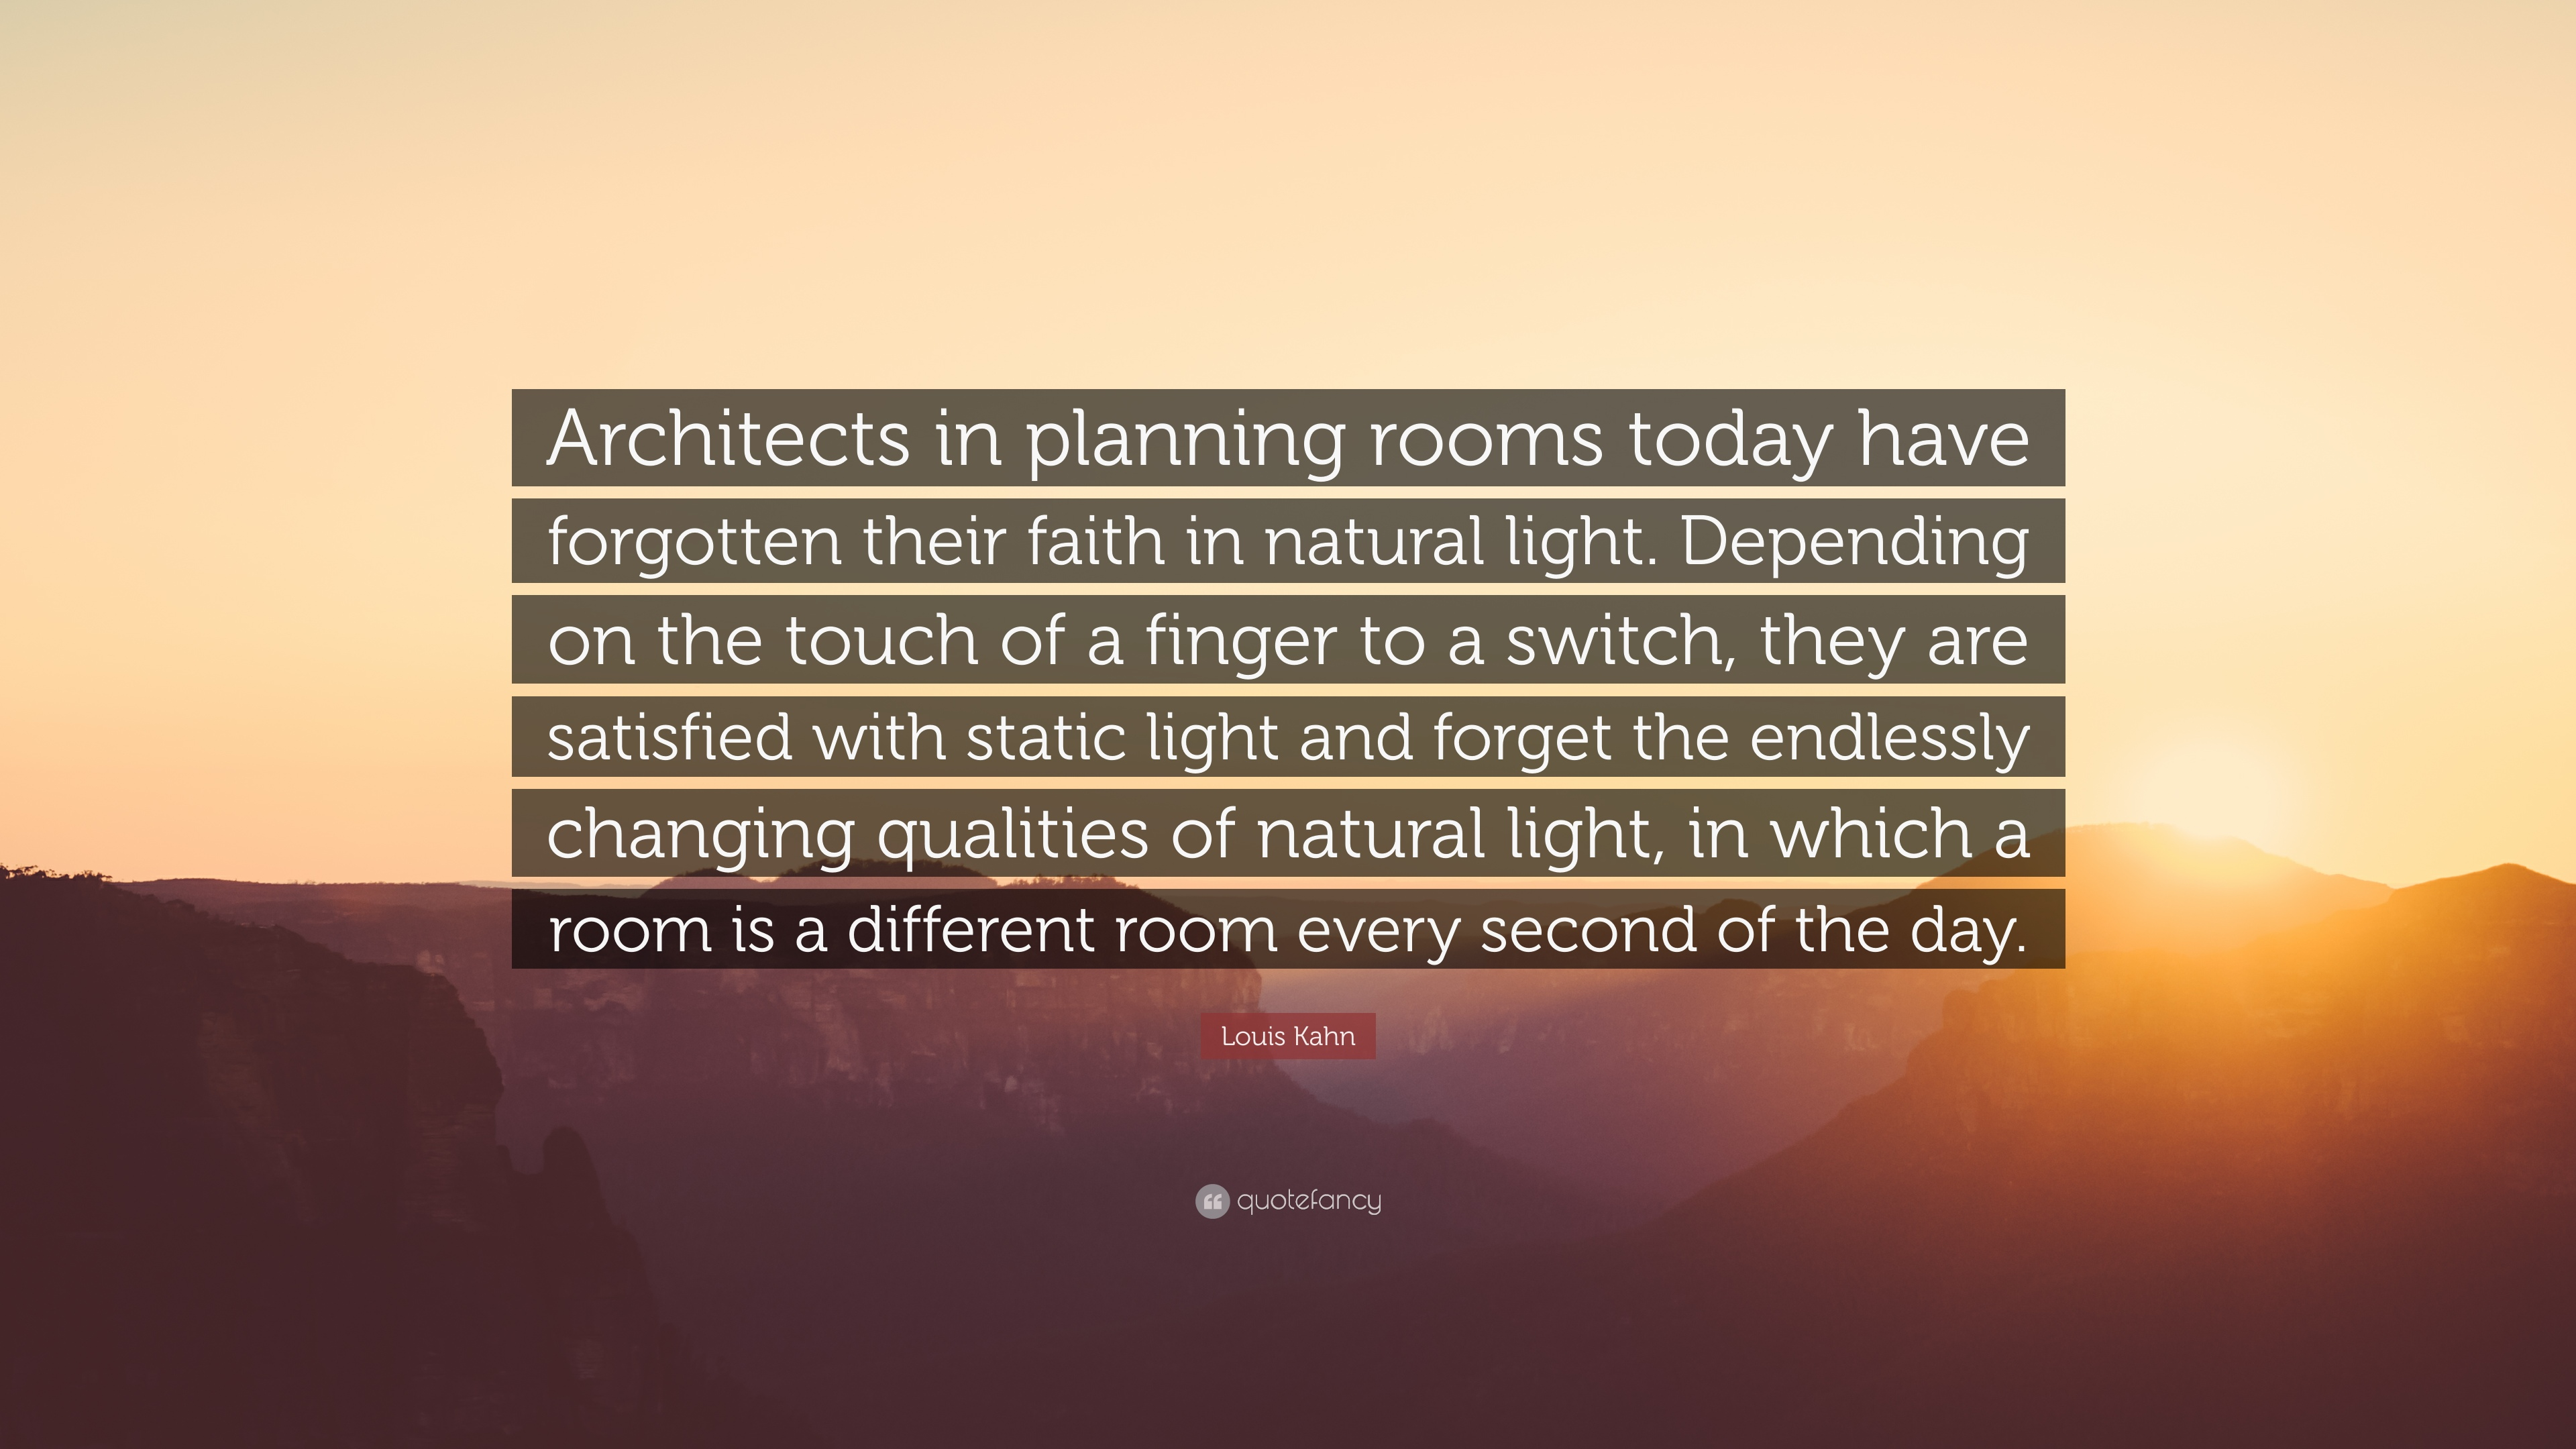 Louis Kahn Quotes (34 Wallpapers) - Quotefancy